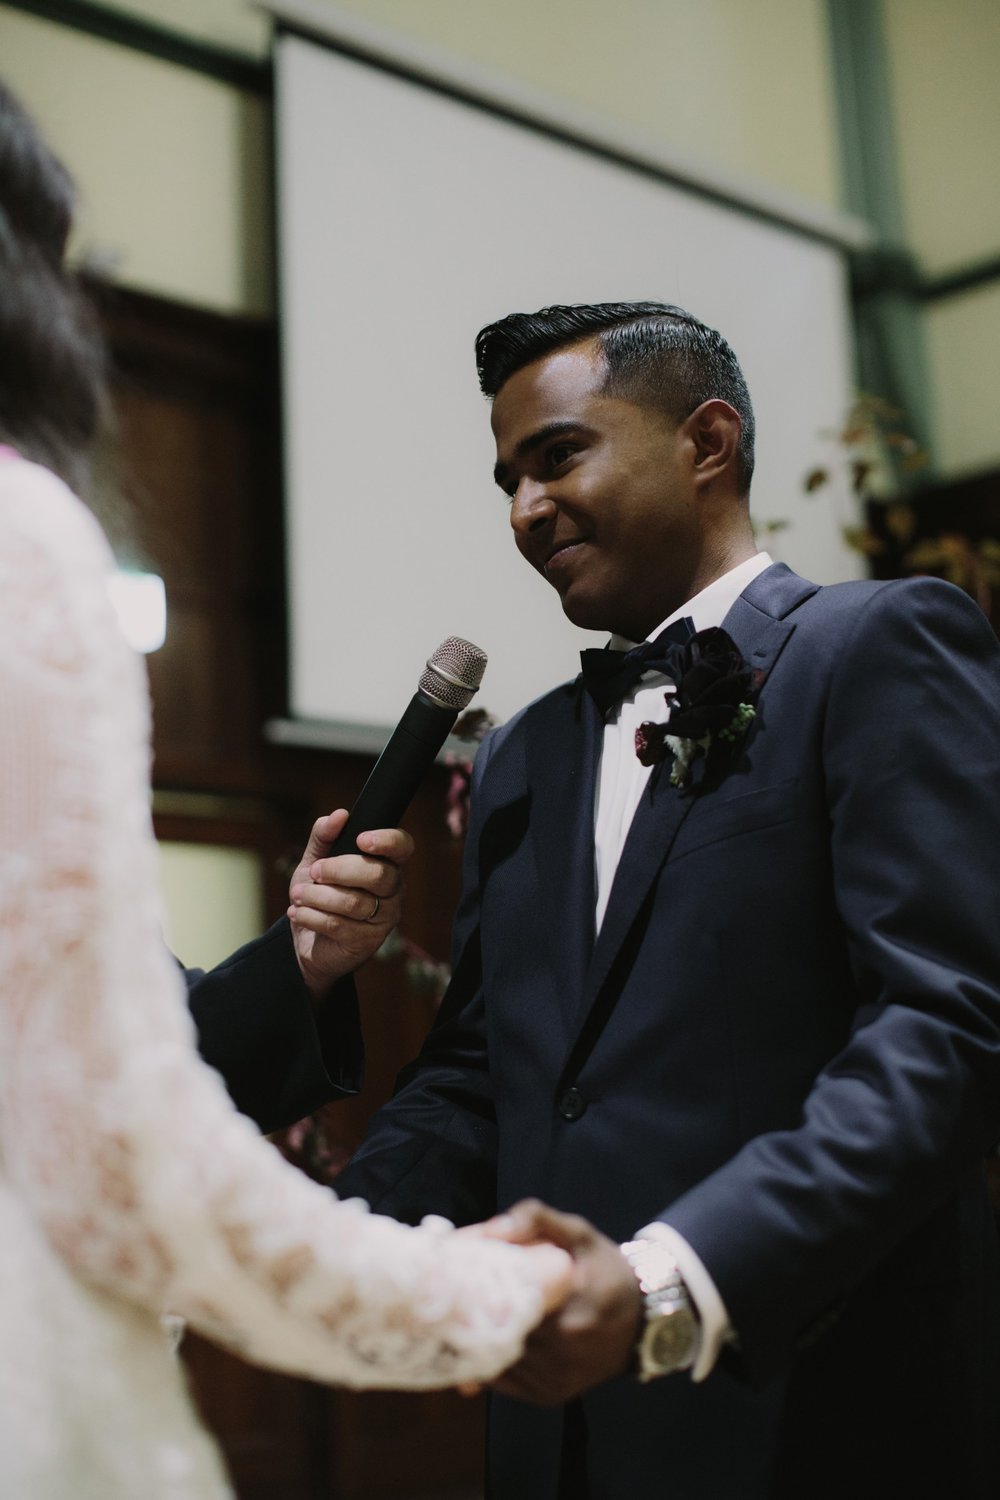 I-Got-You-Babe-Weddings-The-033George-Ballroom-St-Kilda-Wedding-Amy-Abhi.jpg